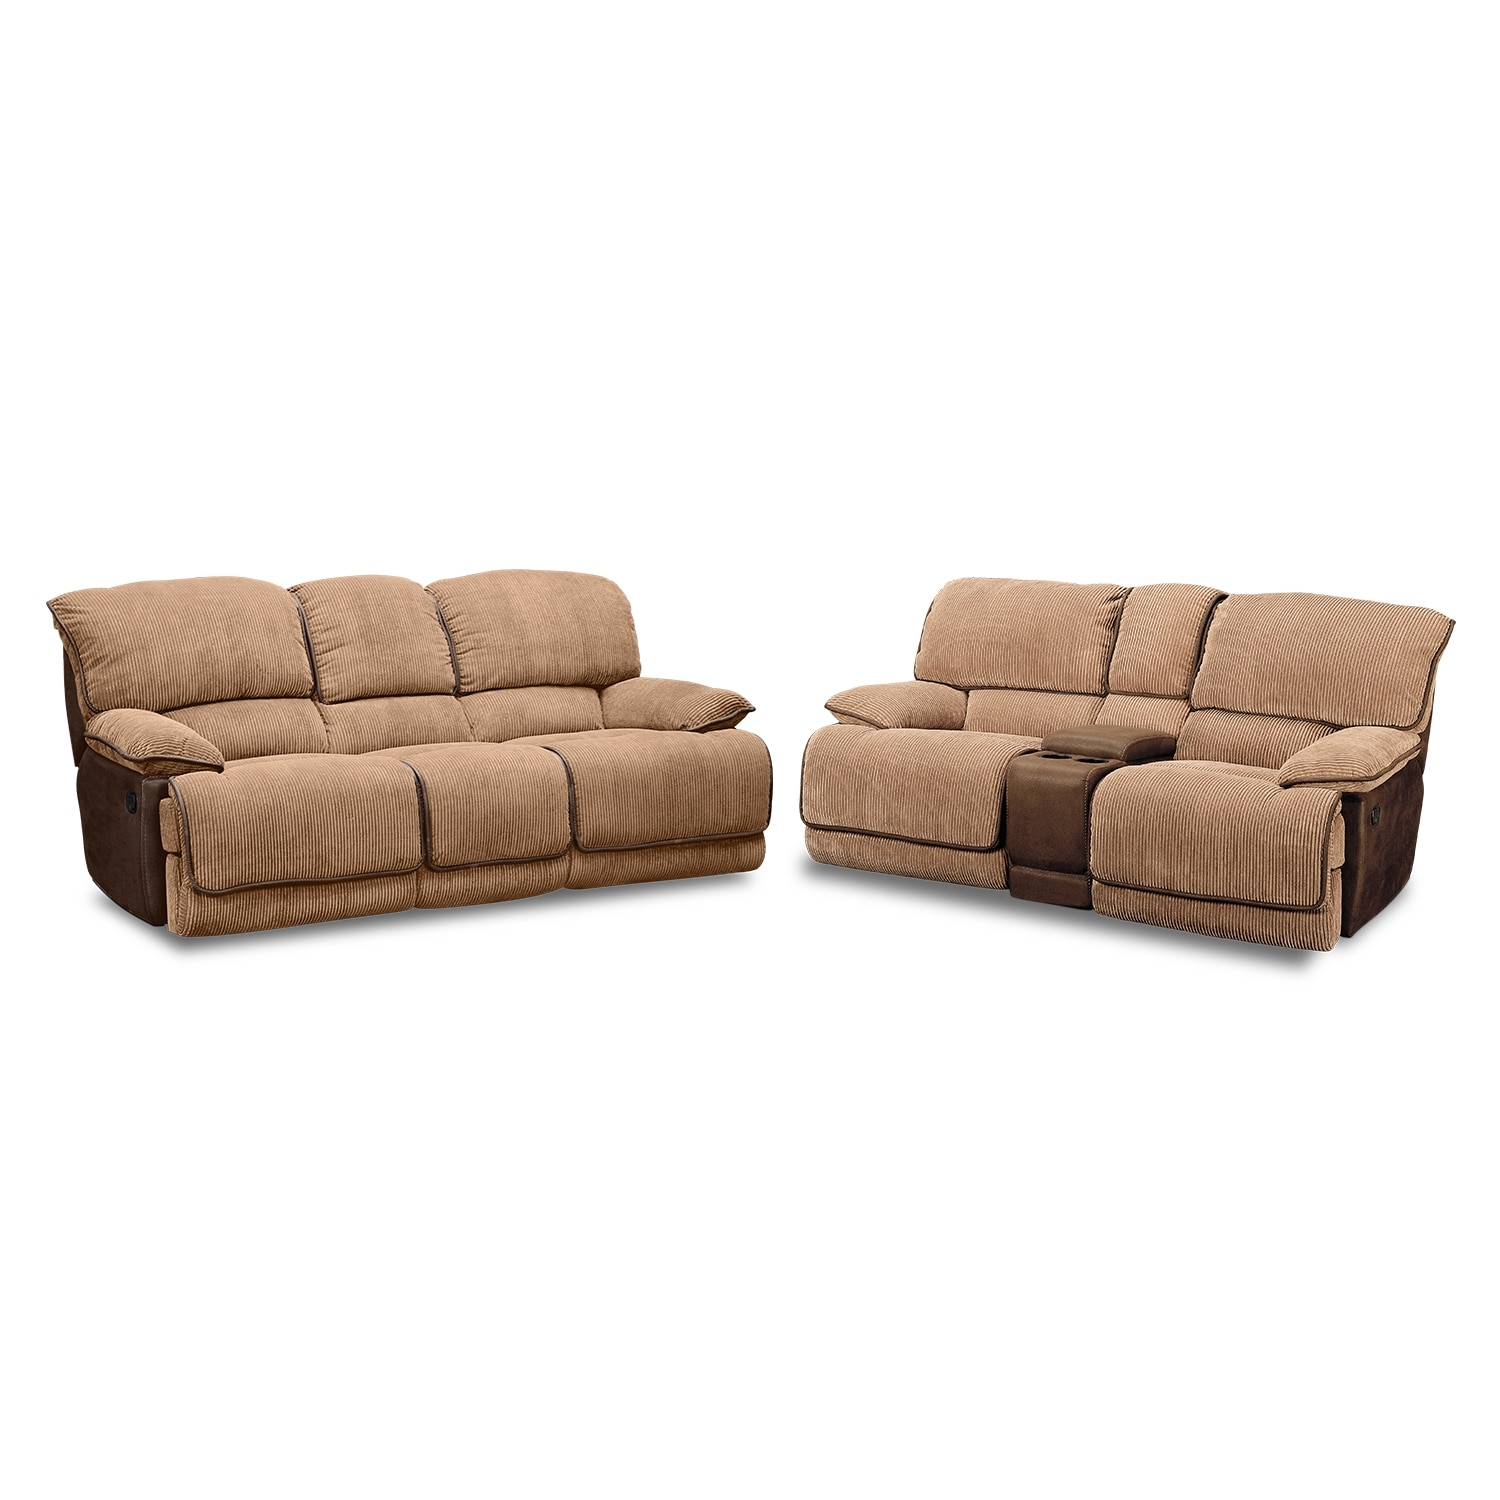 Laguna Reclining Sofa And Gliding Reclining Loveseat Set